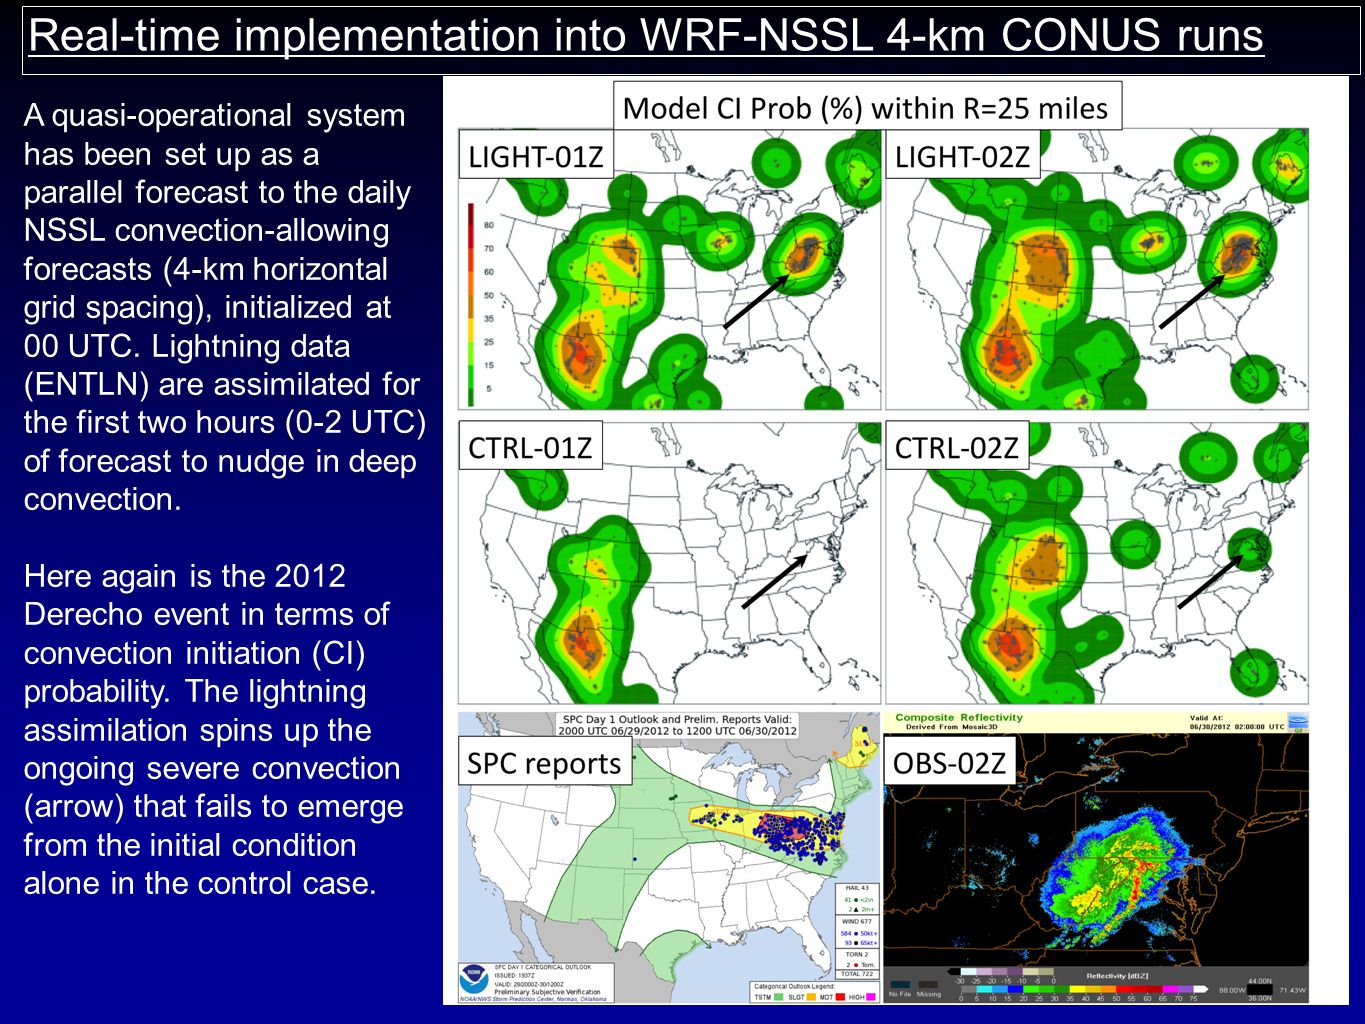 Hurricane Isaac (2012) ctd Units of densities are per hour per 3km x 3km grid cell area